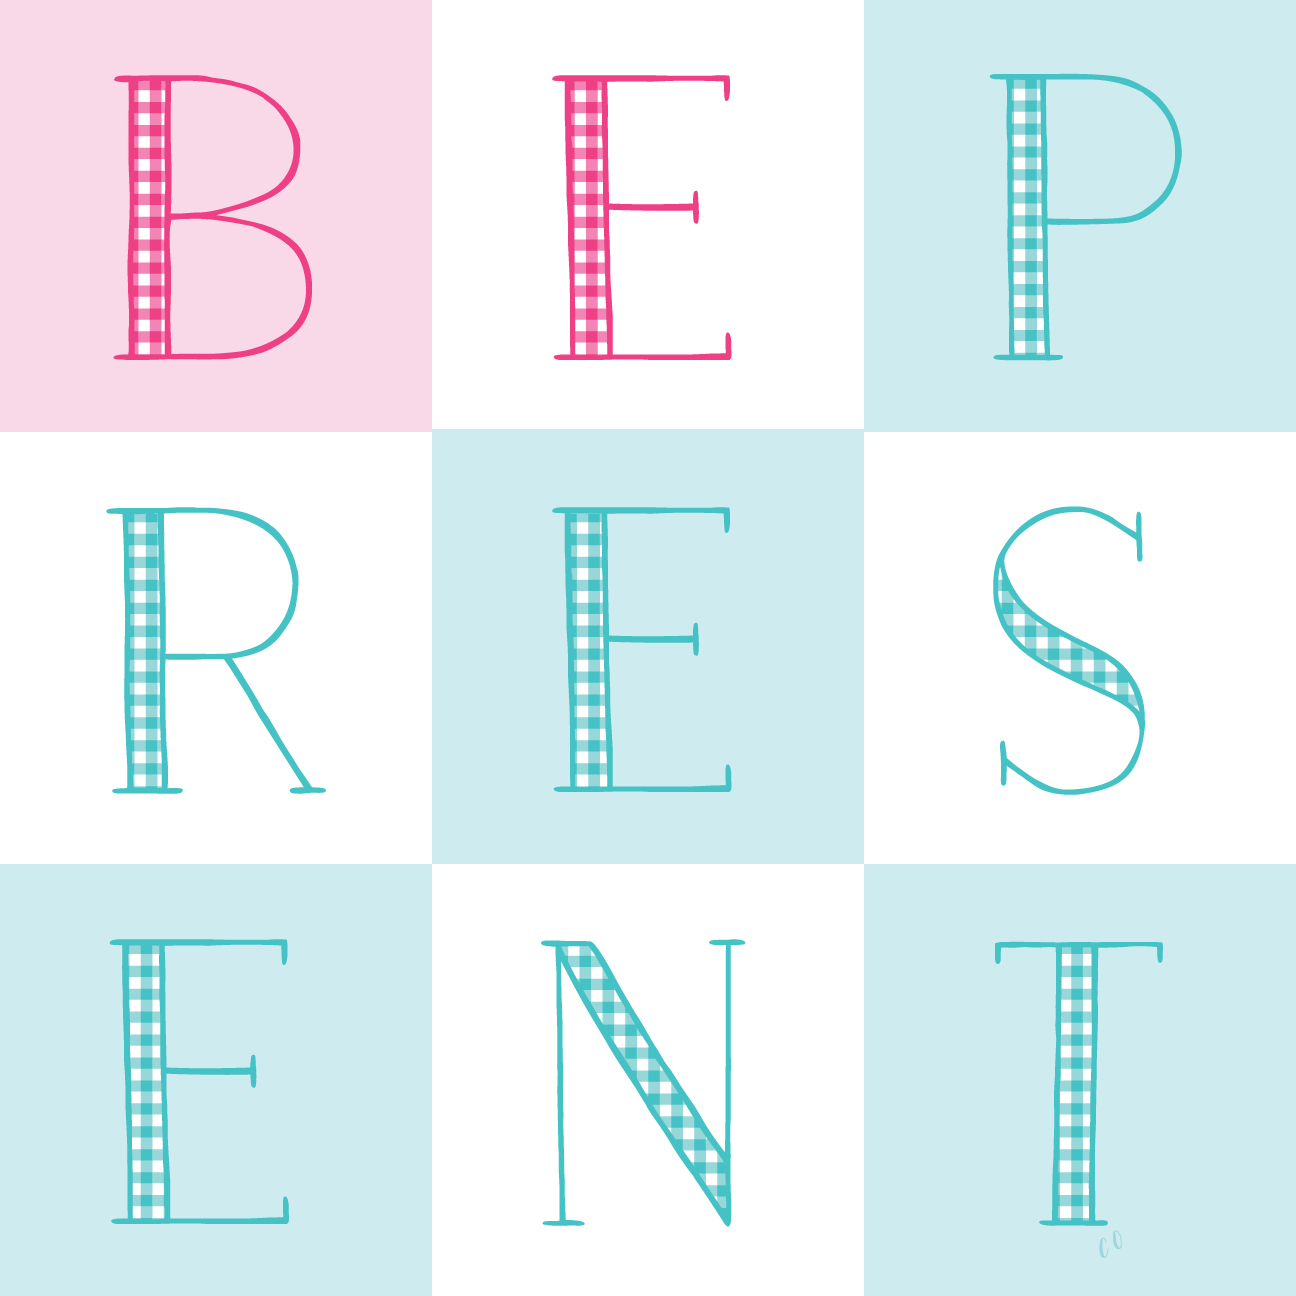 Be Present Illustration by Chris Olson.